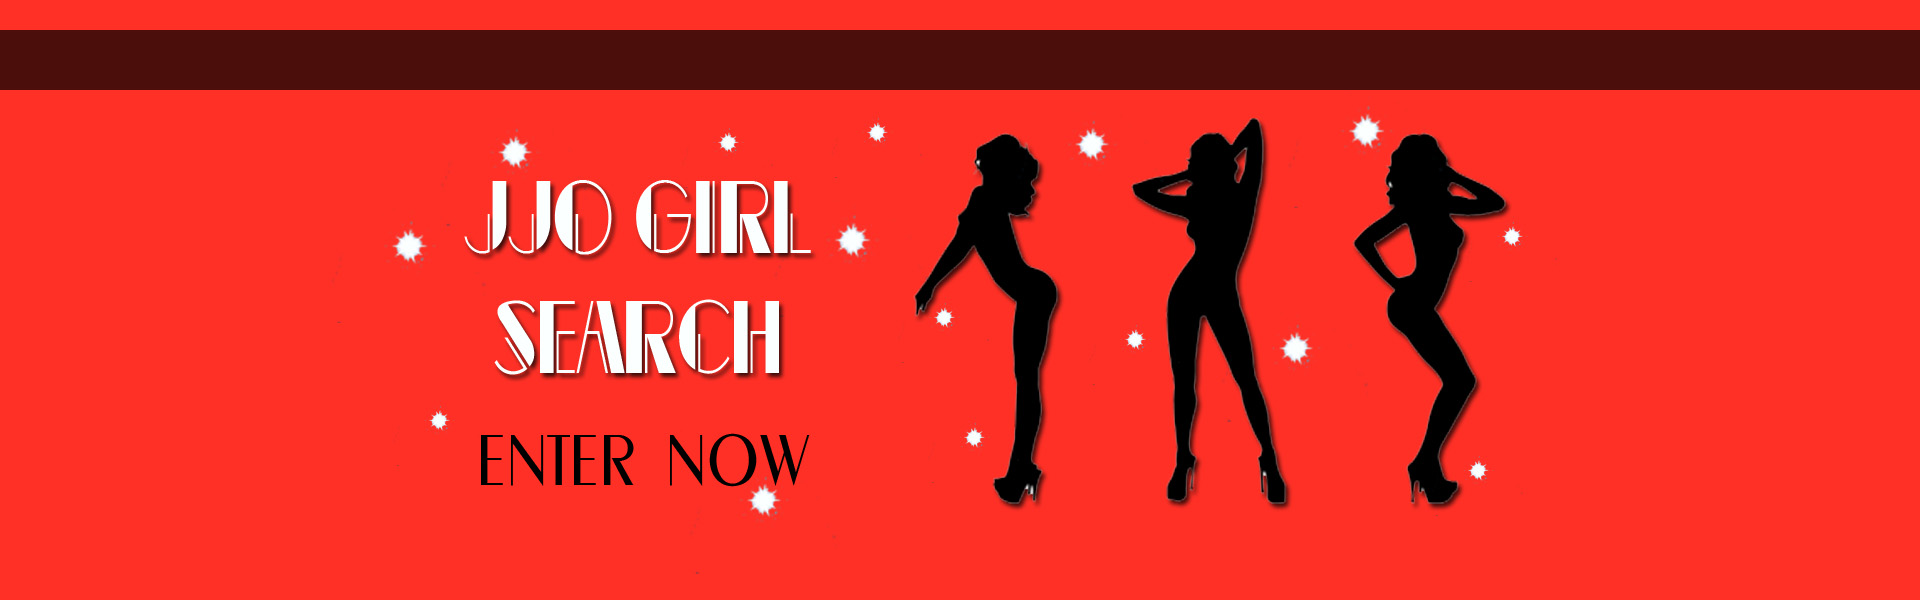 JJO-Girl-Search-2015-enter-now